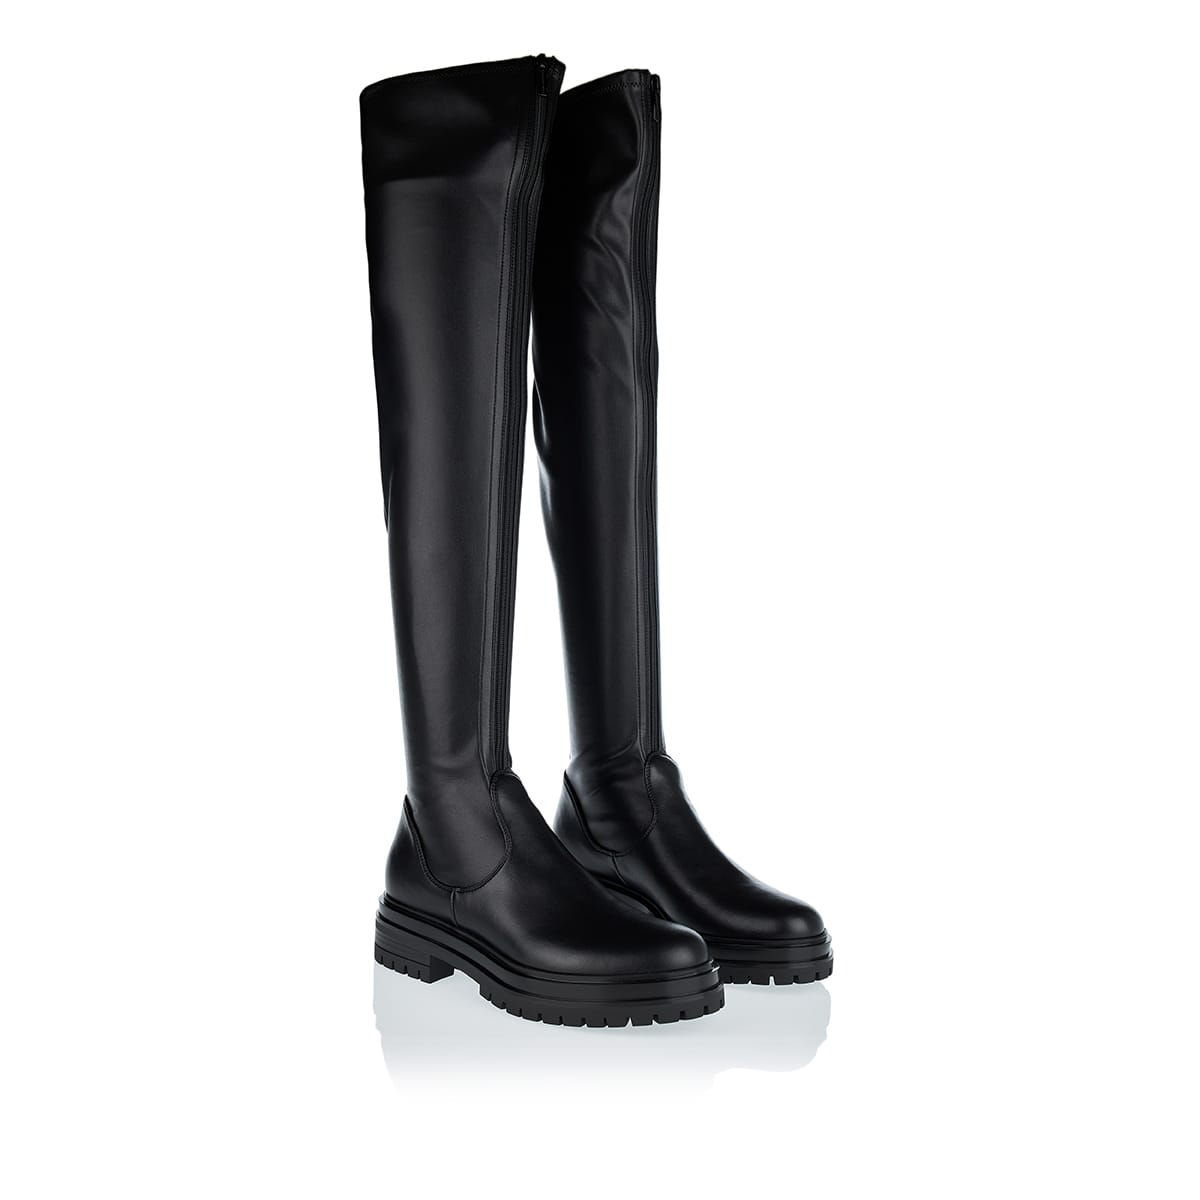 Marsden over-the-knee leather boots